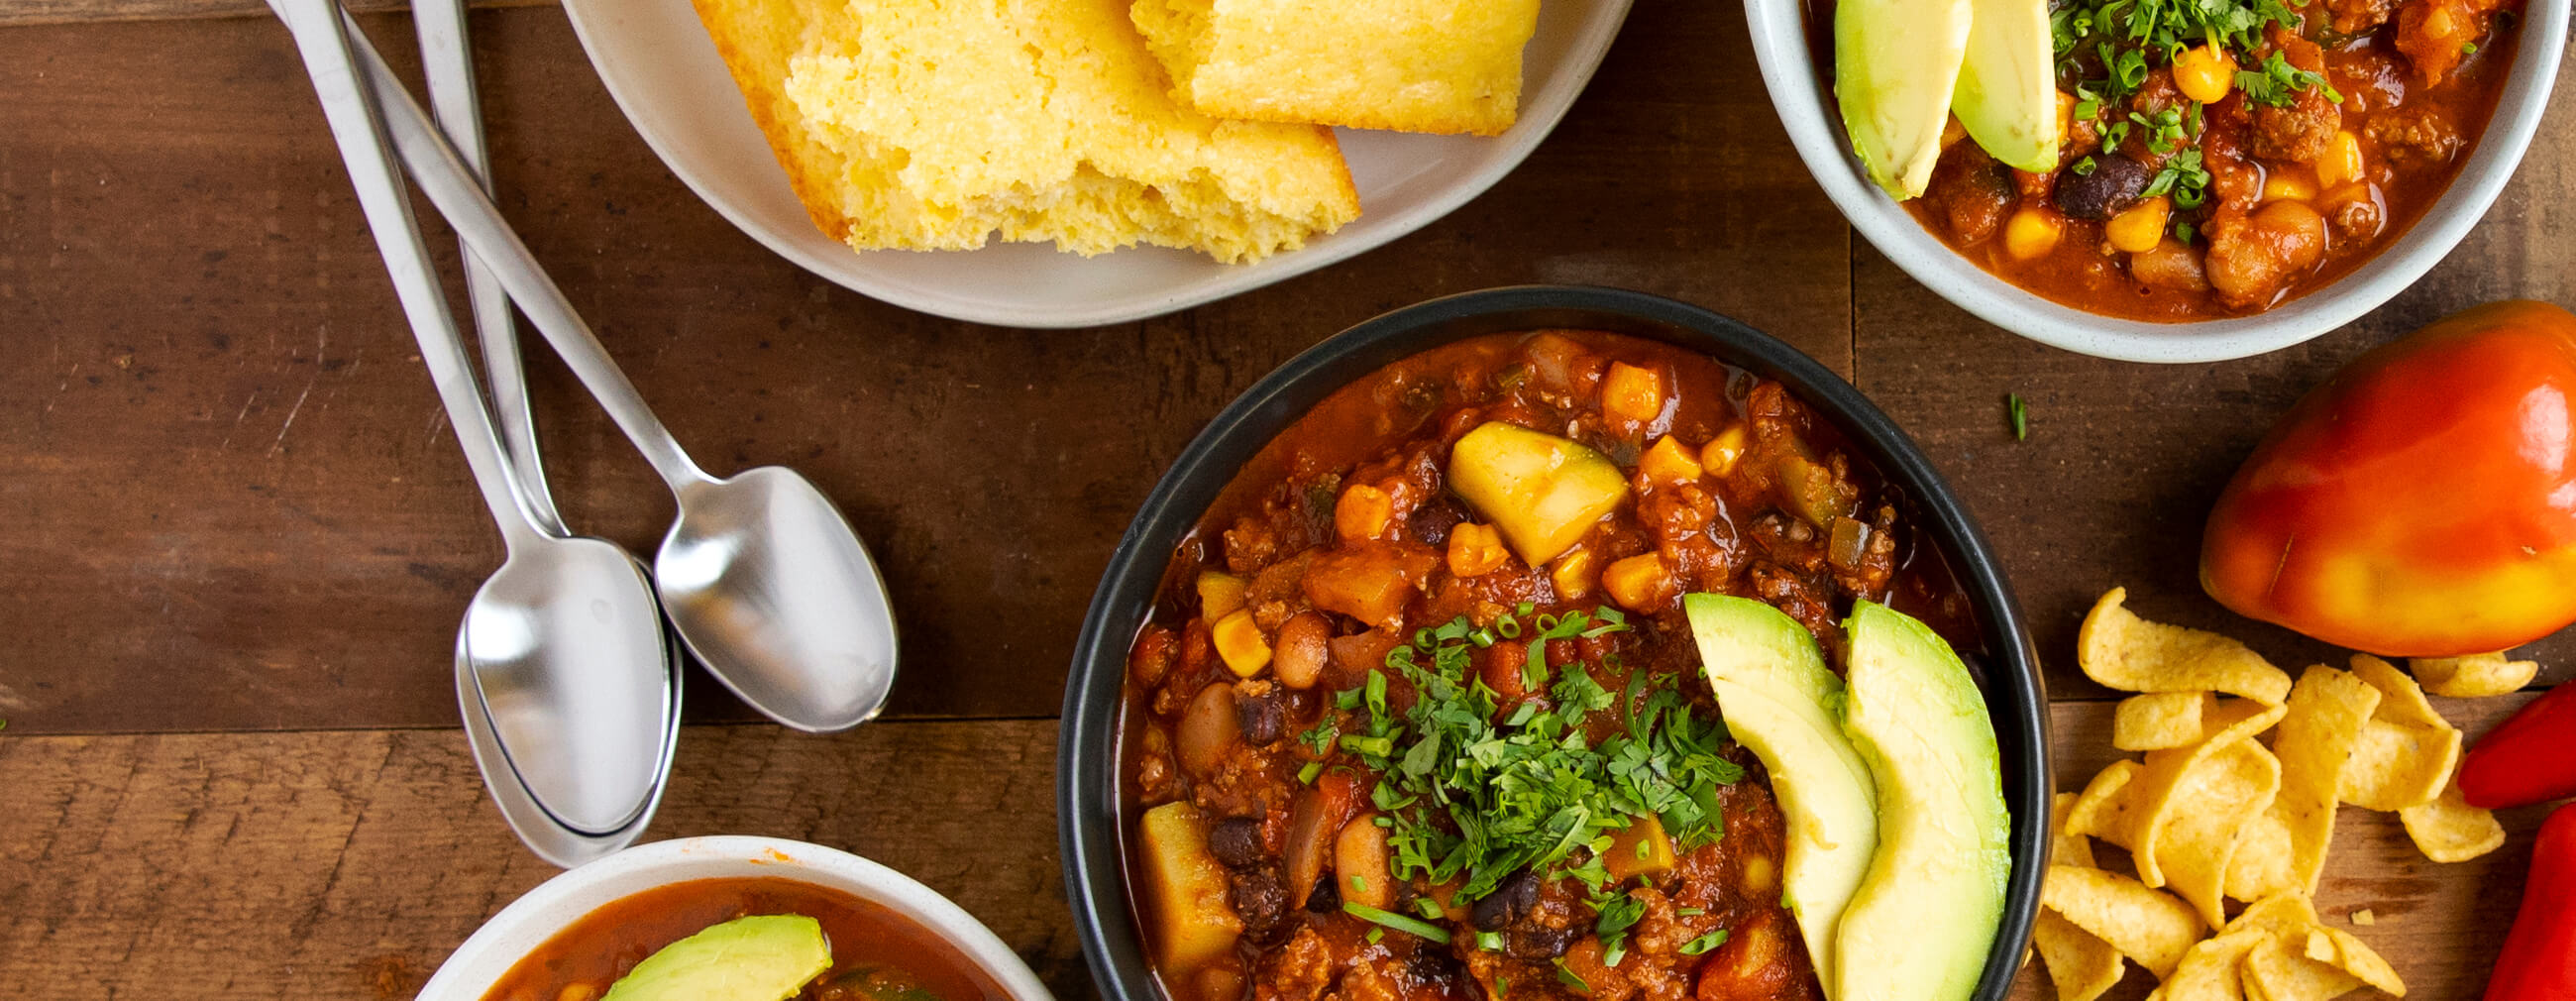 Slow Cooker Summer Vegetable Chili